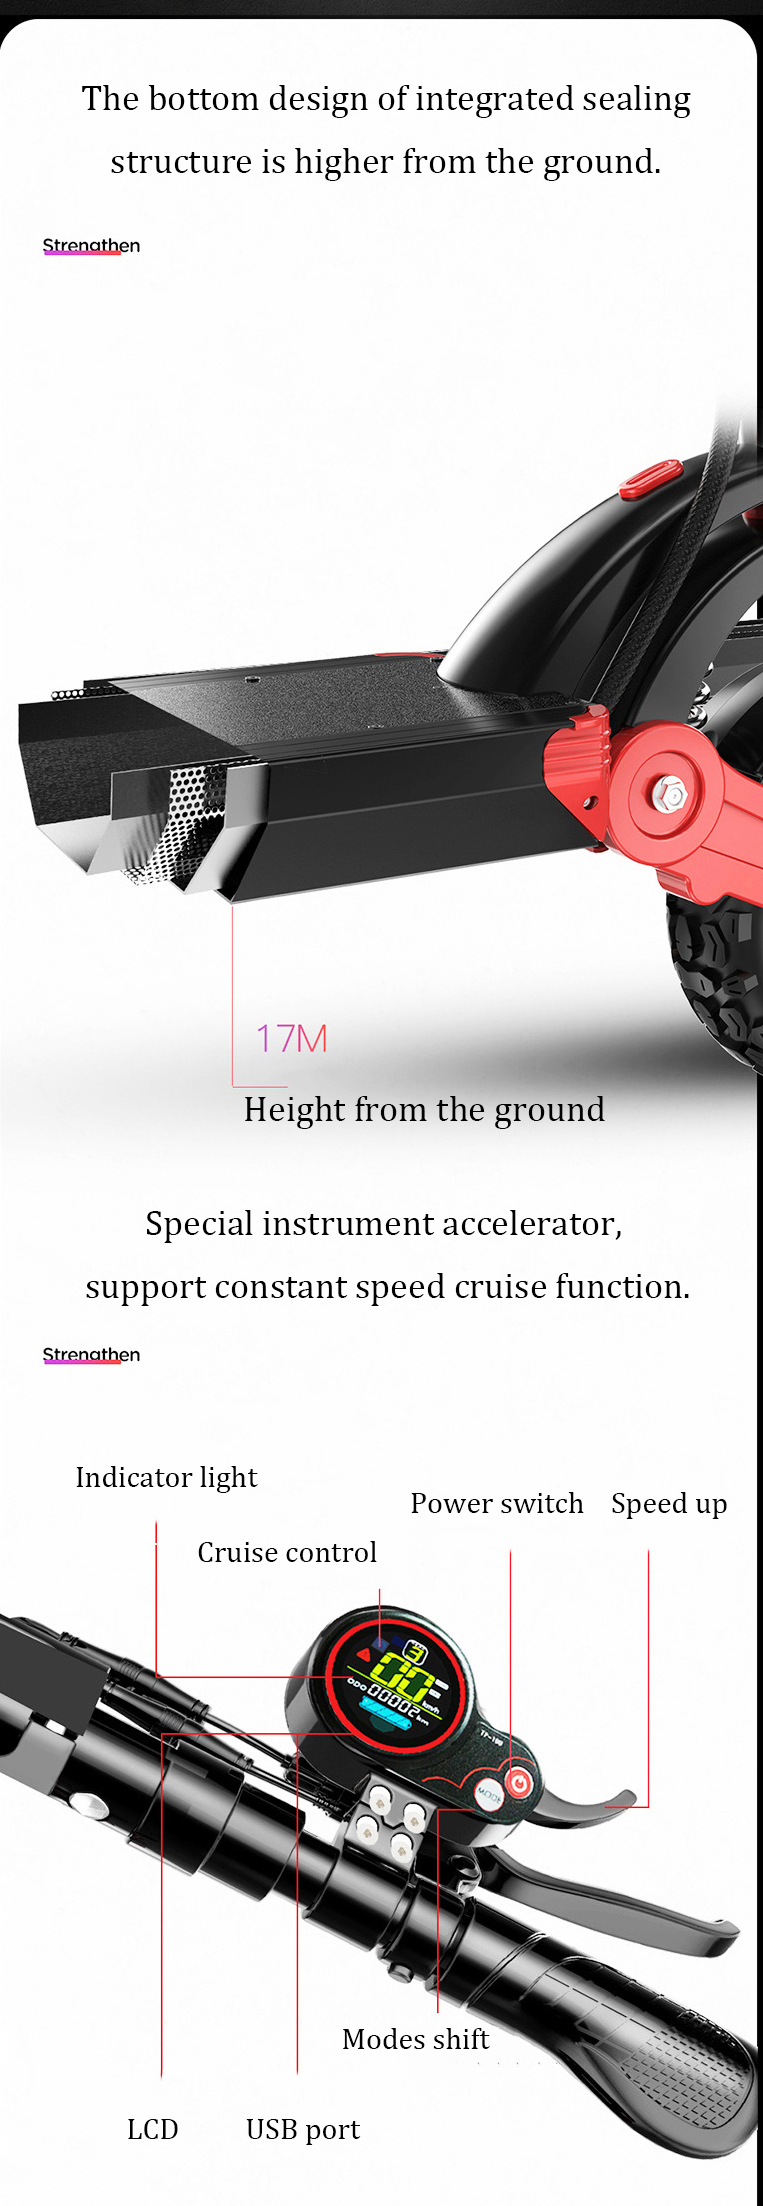 MACWHEEL M30 23Ah 48V 500W Dual Motor Folding Electric Scooter With Saddle Color Display 35km/h Top Speed 150km Mileage Range 150KG Bearing